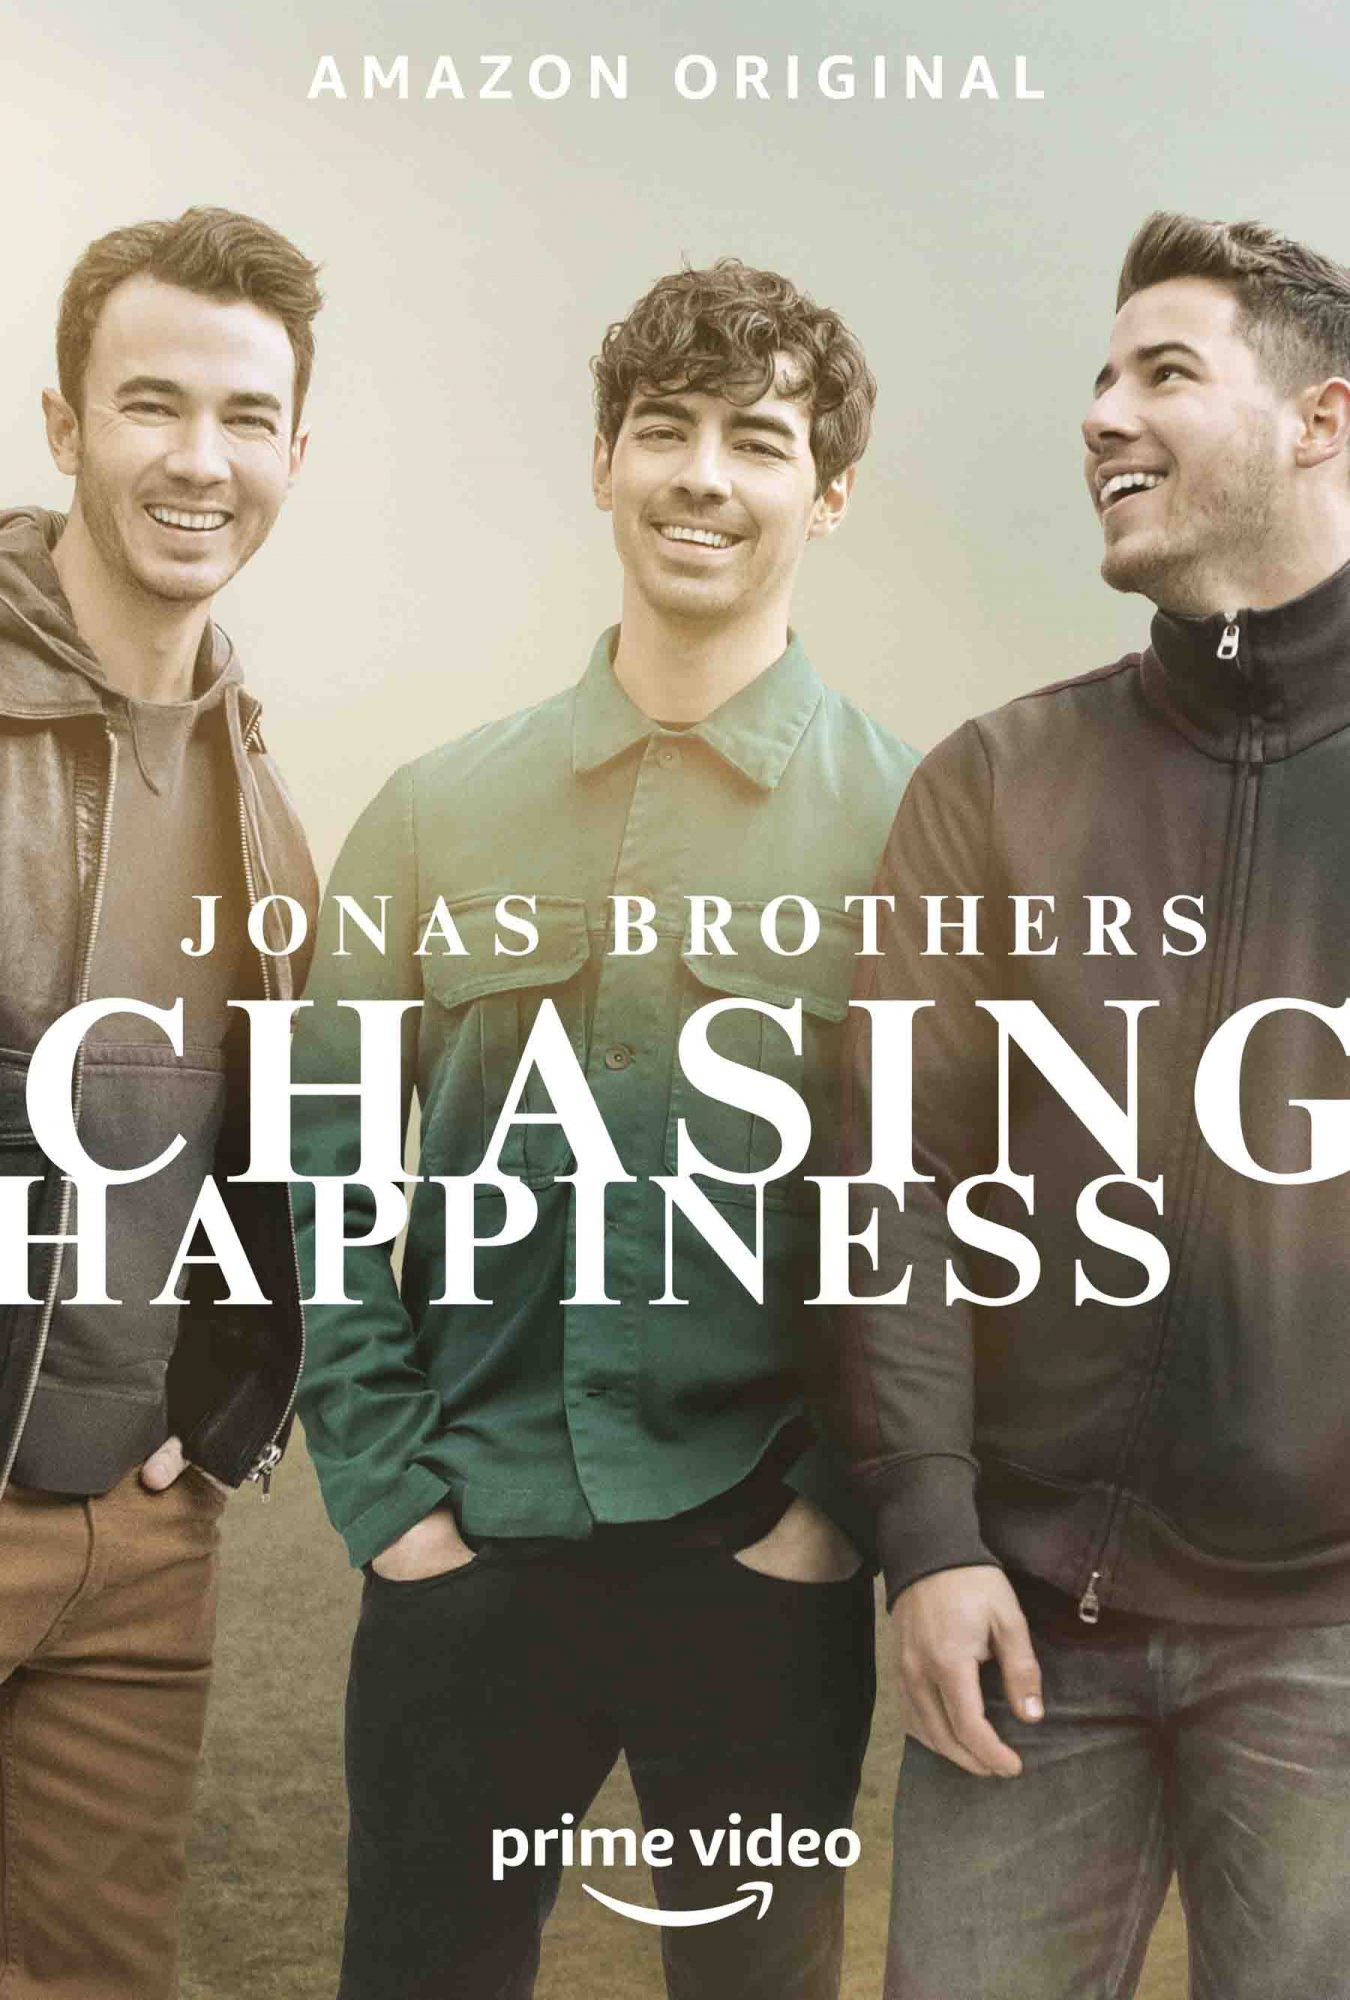 Jonas Brothers' Chasing Happiness movie poster CR: Amazon Prime Video